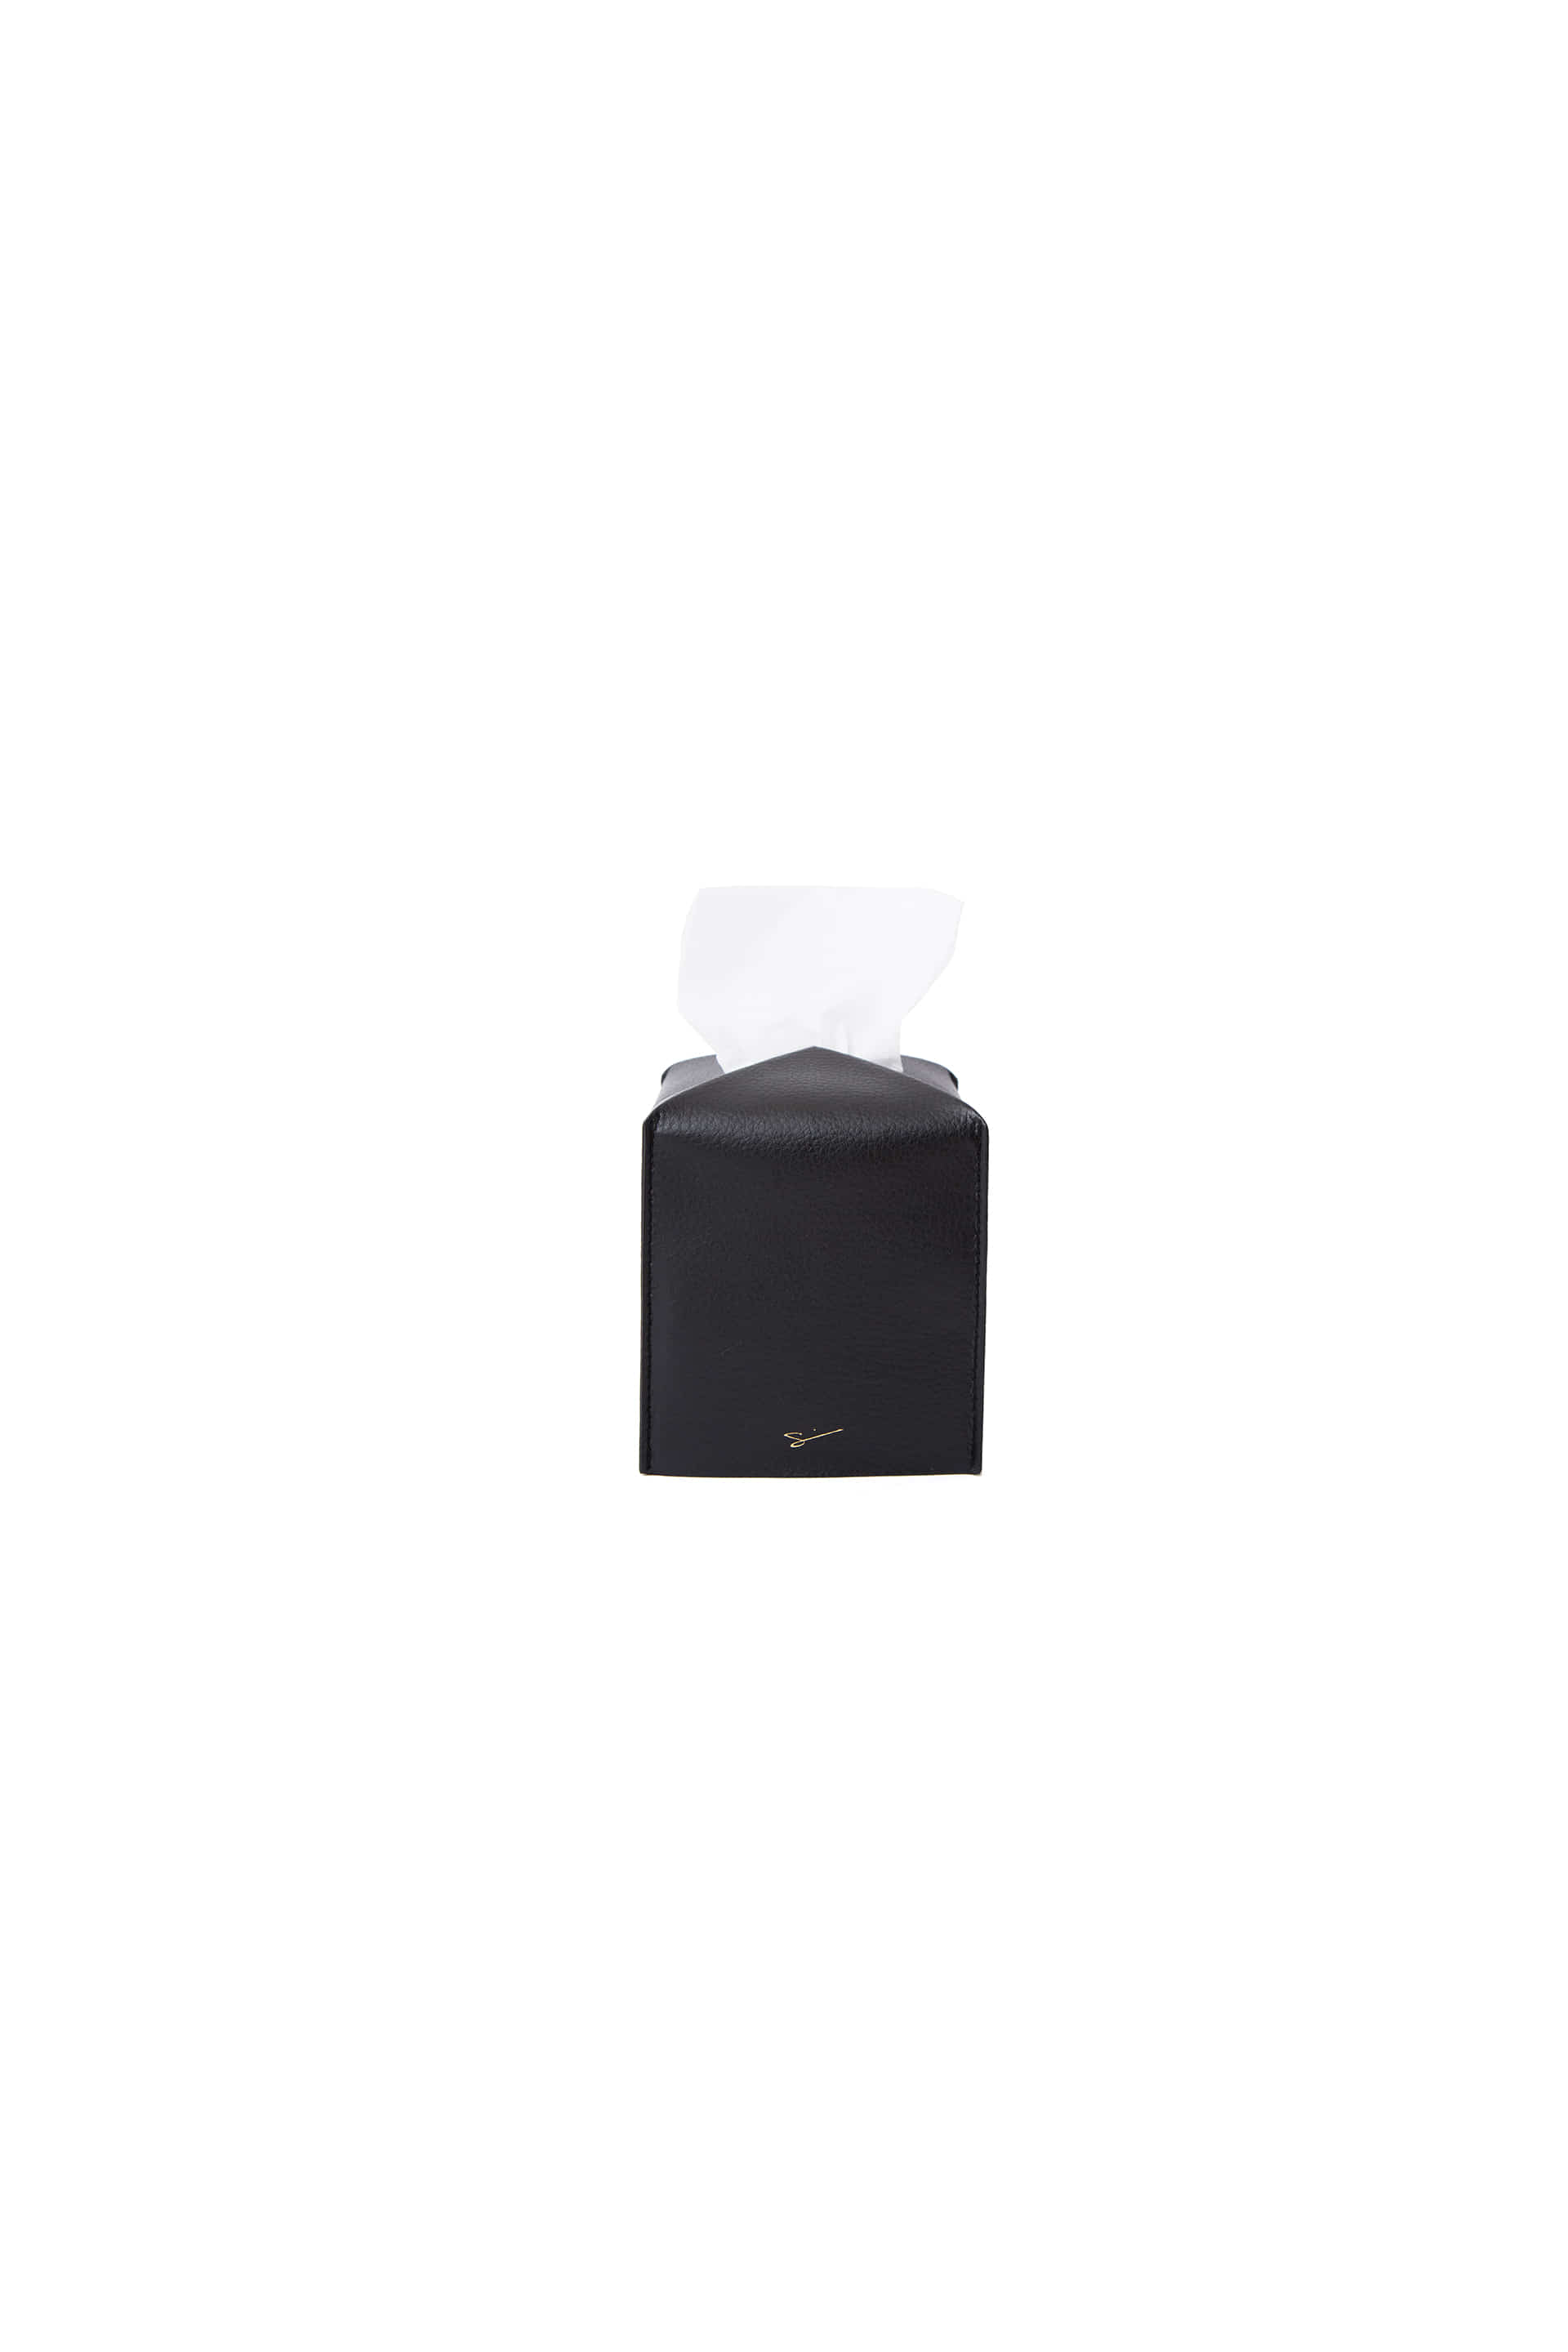 TISSUE CASE S 22 Black